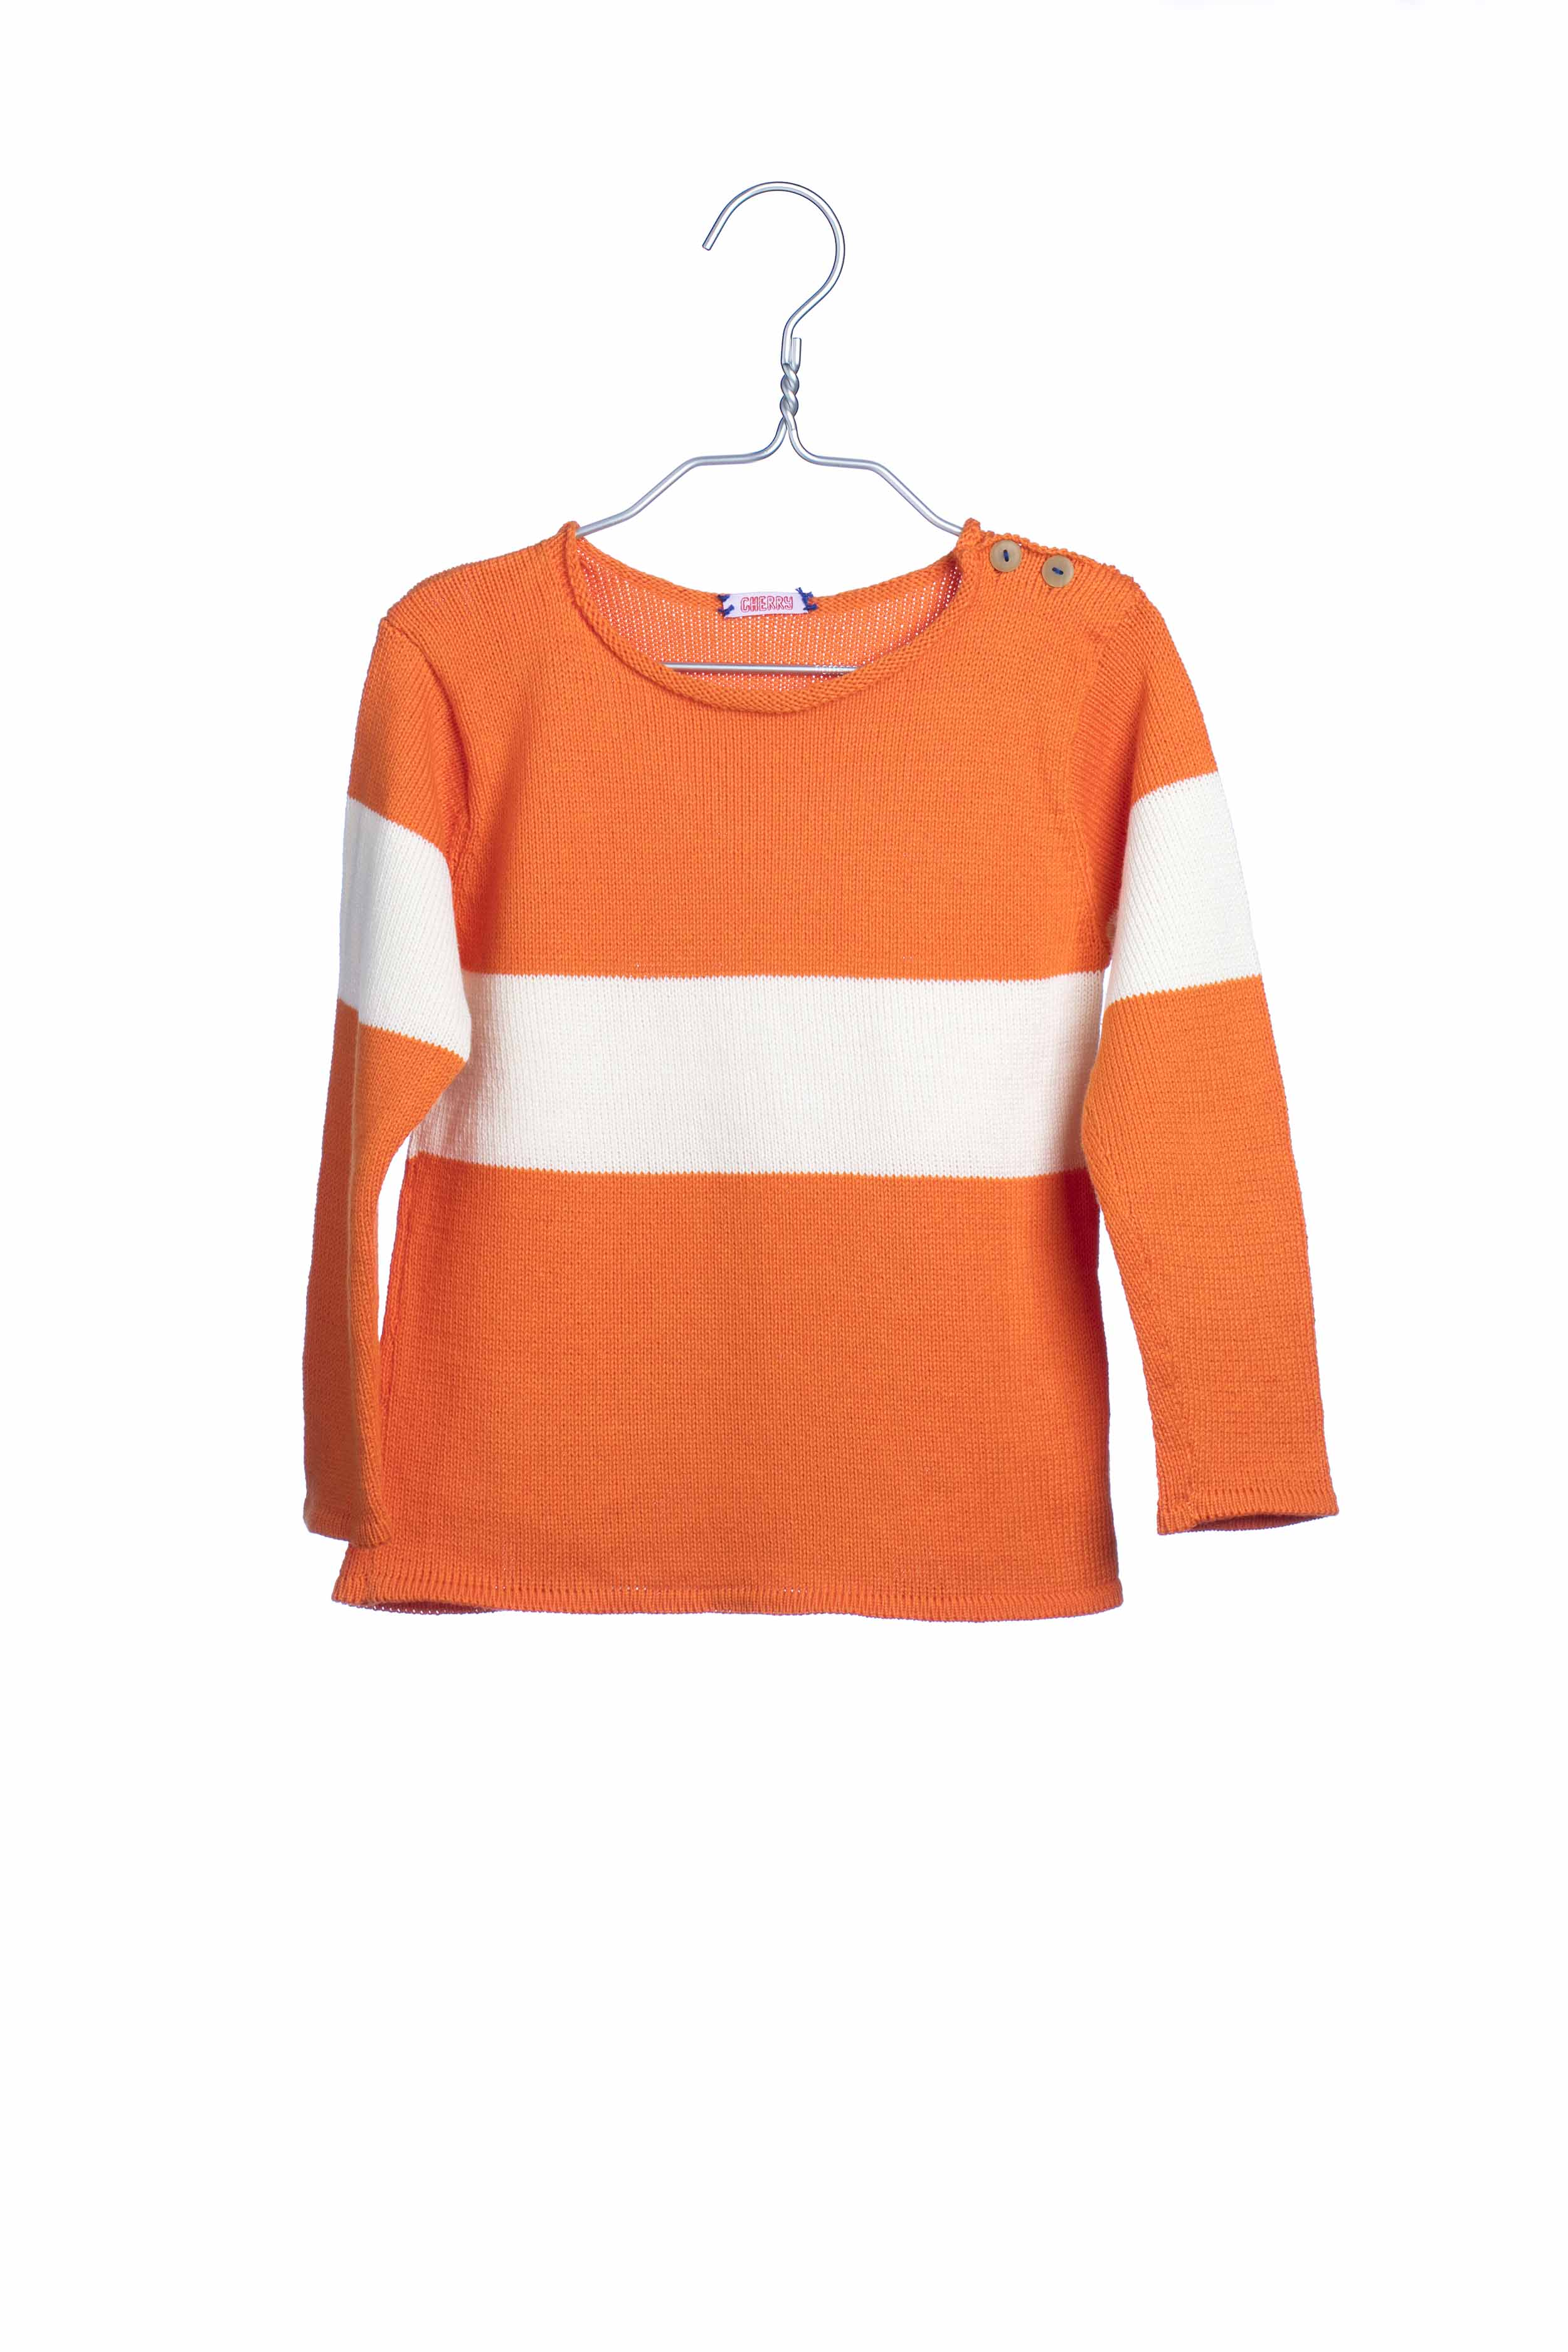 1733 Knit Sweat - Orange